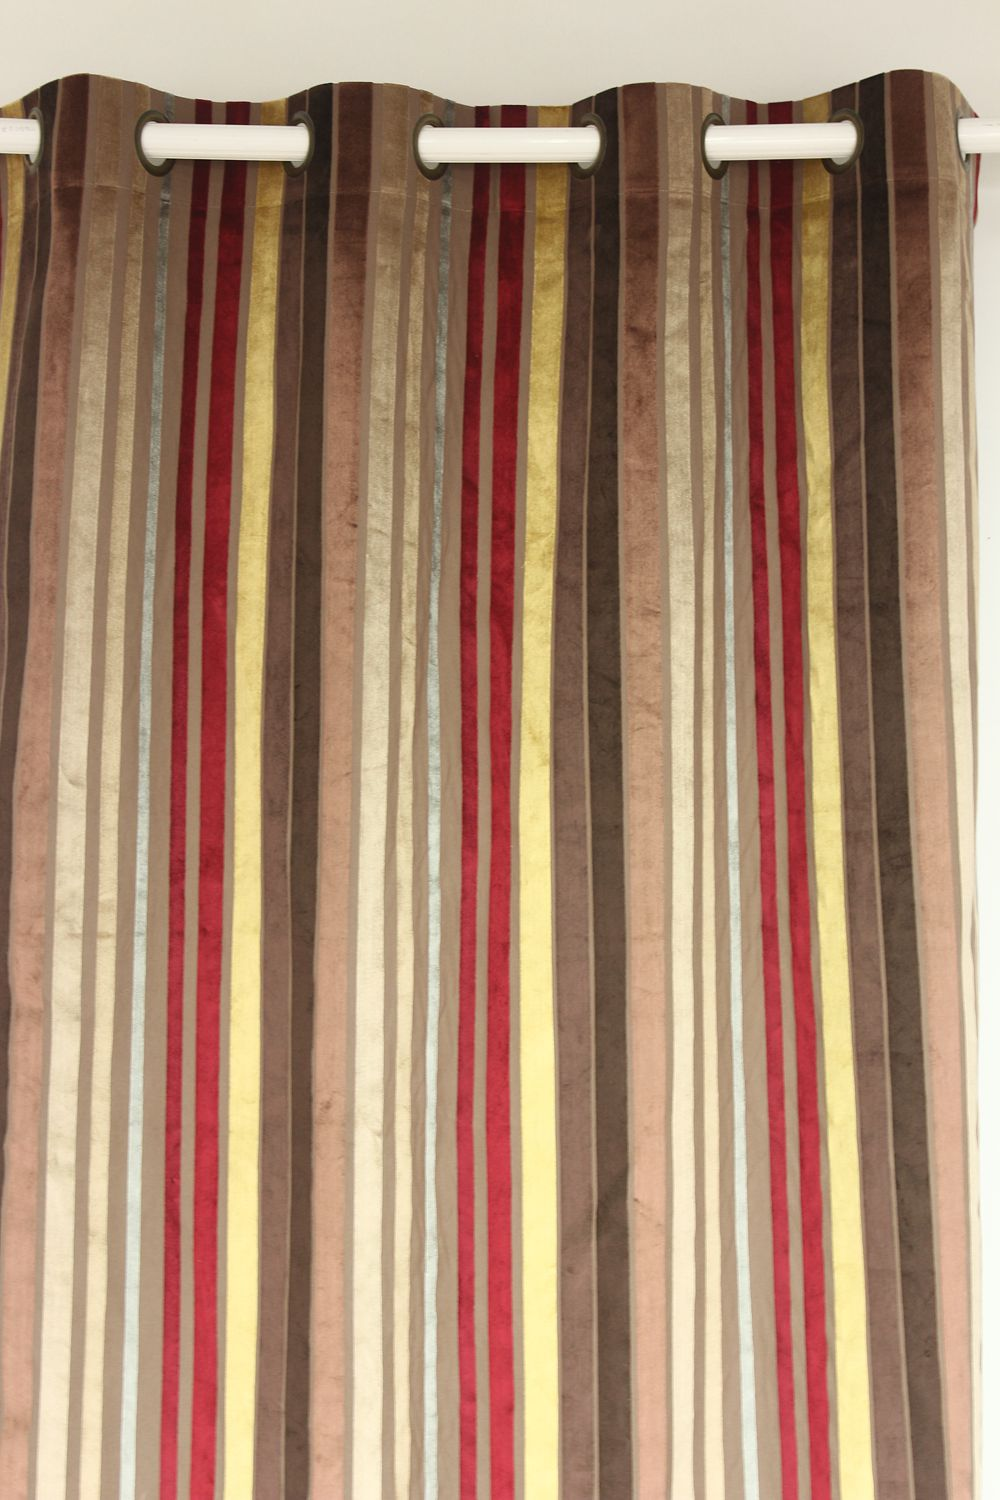 Aliexpress.com : Buy VEZO HOME Multi Burgundy Stripes Velvet Window  Treatment Curtains Panel Door Bedroom Living Room Home Decorative Curtain 5  Sizes From ... Part 46